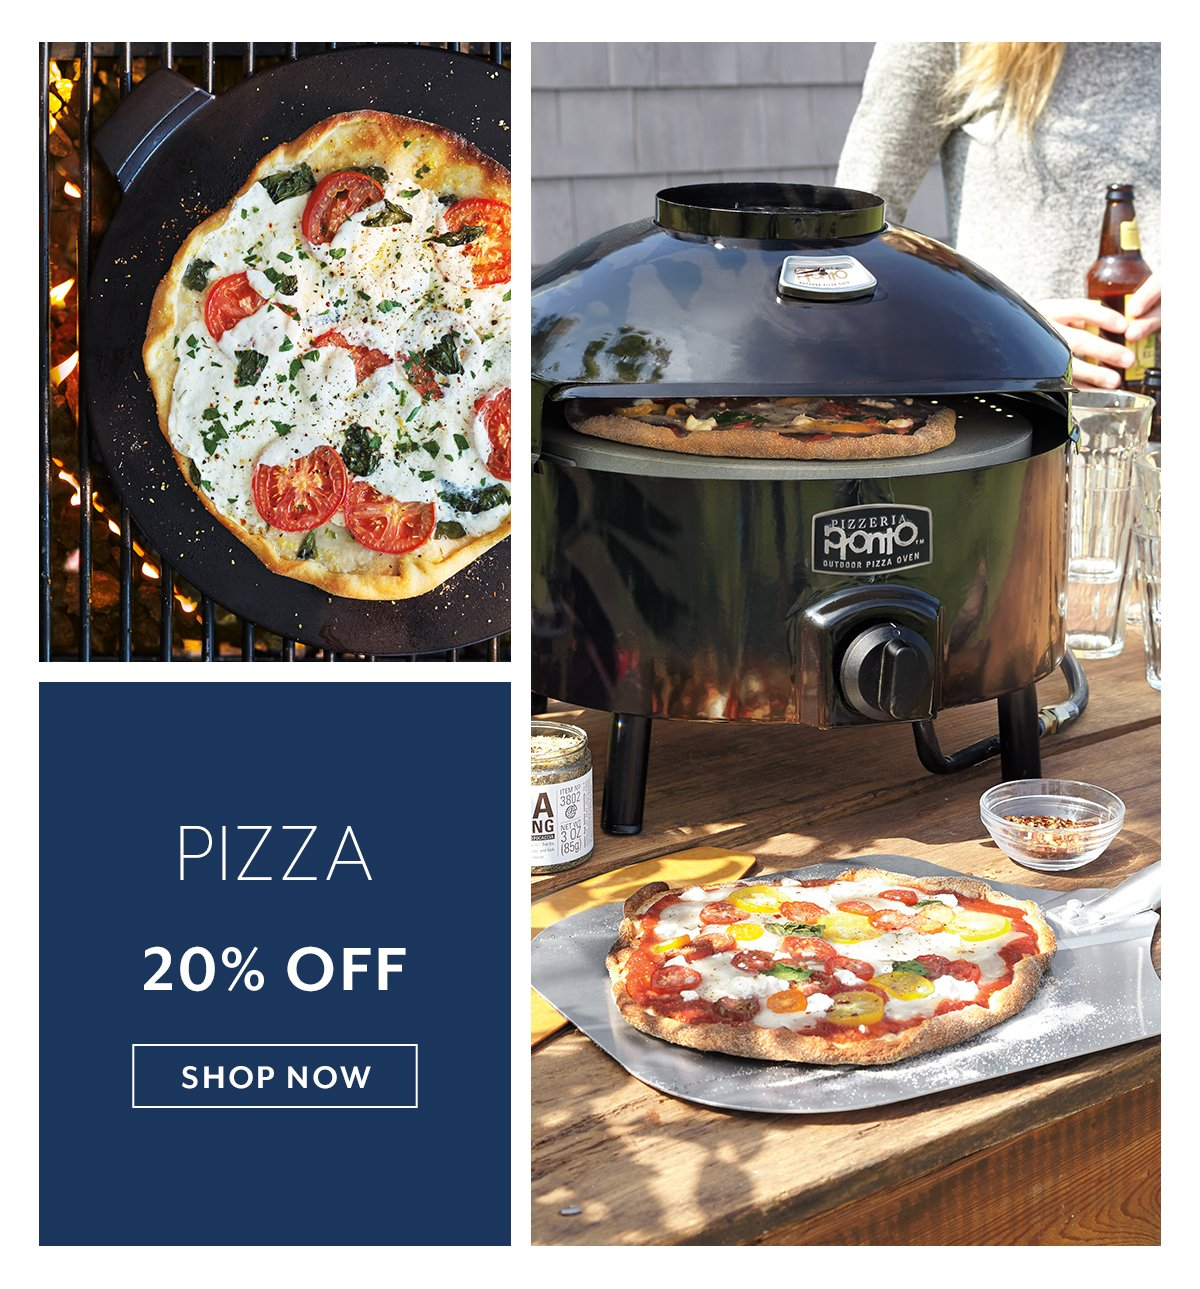 Pizza up to 20% off